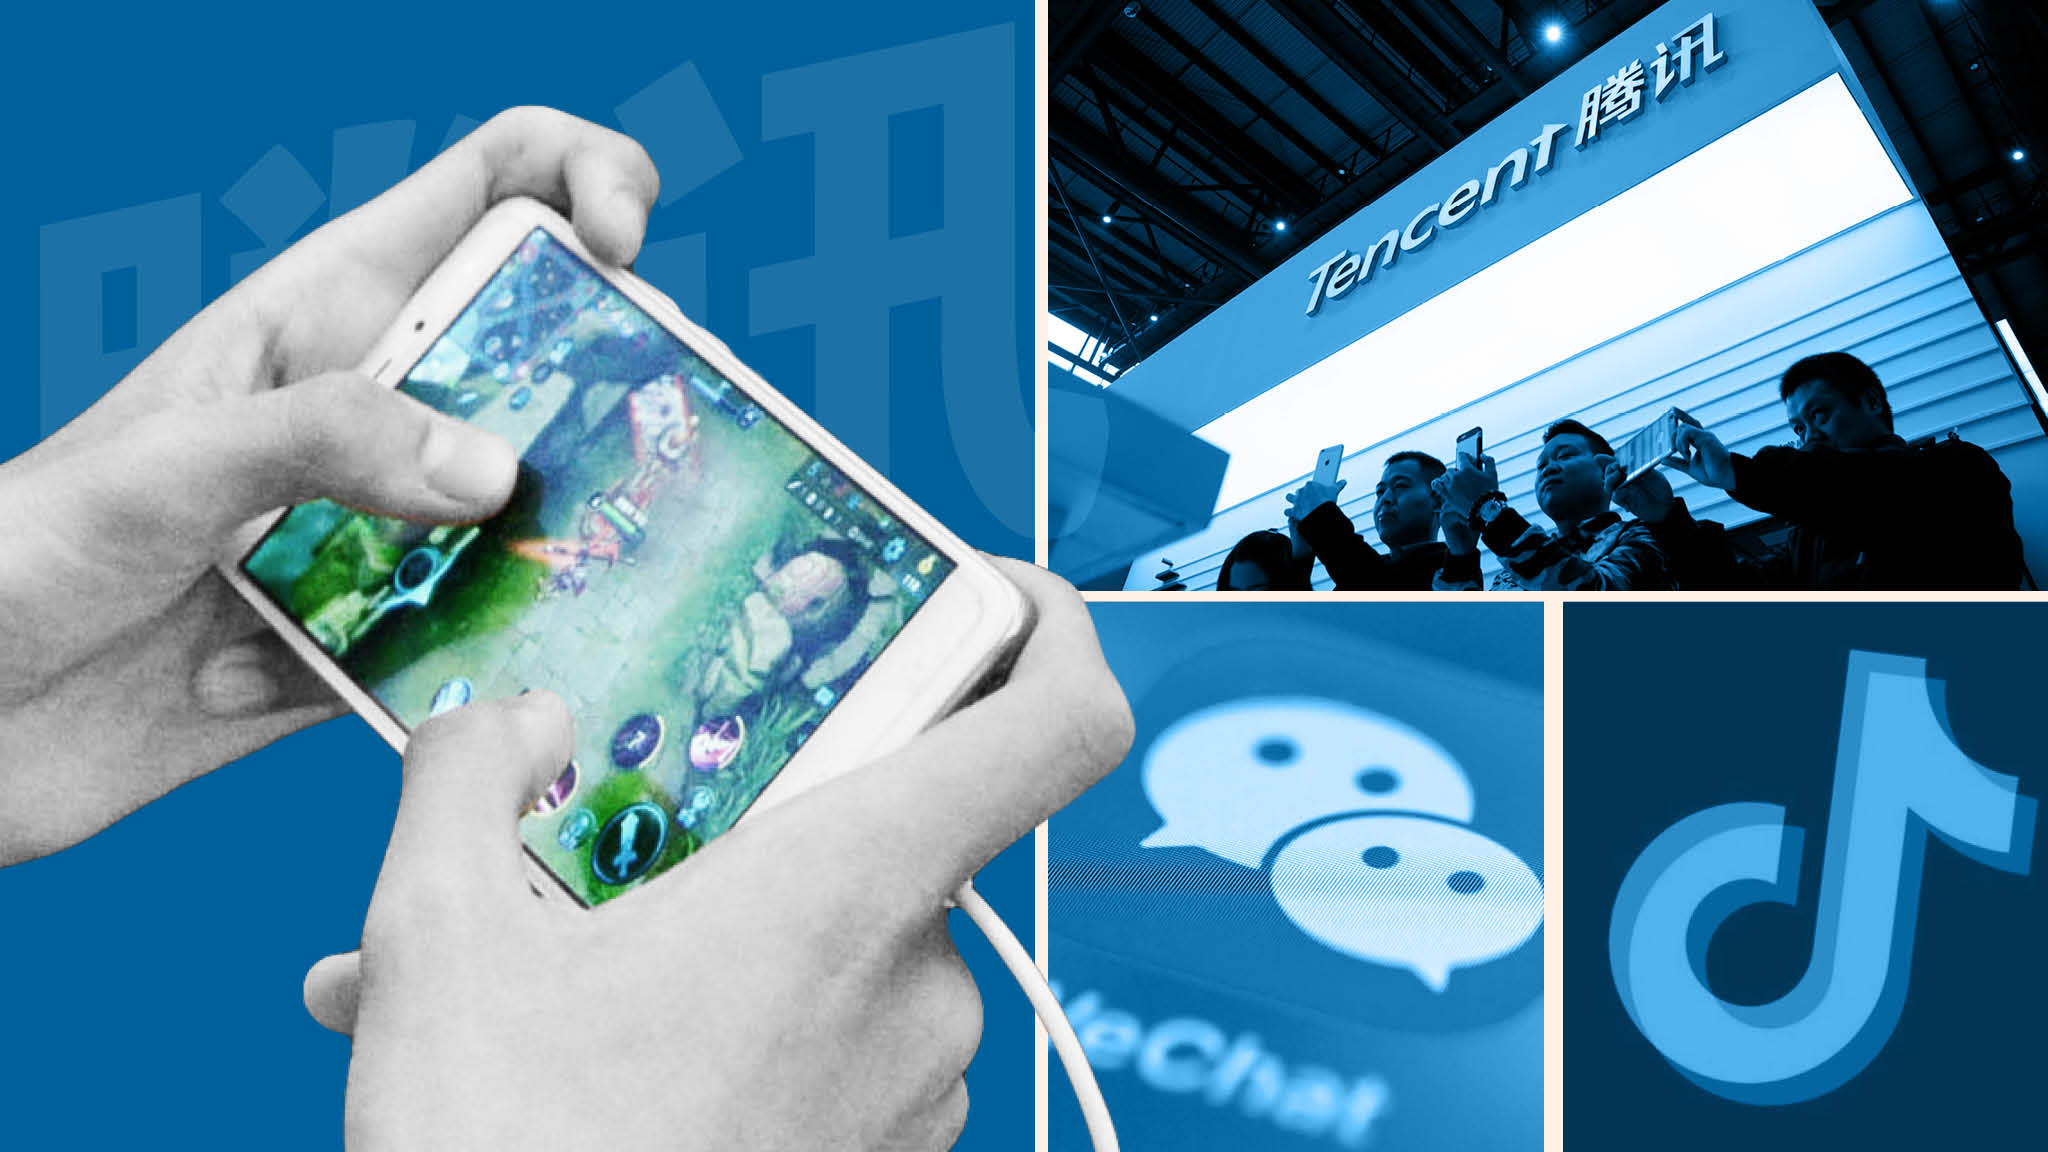 Five factors weighing on Tencent's third-quarter earnings